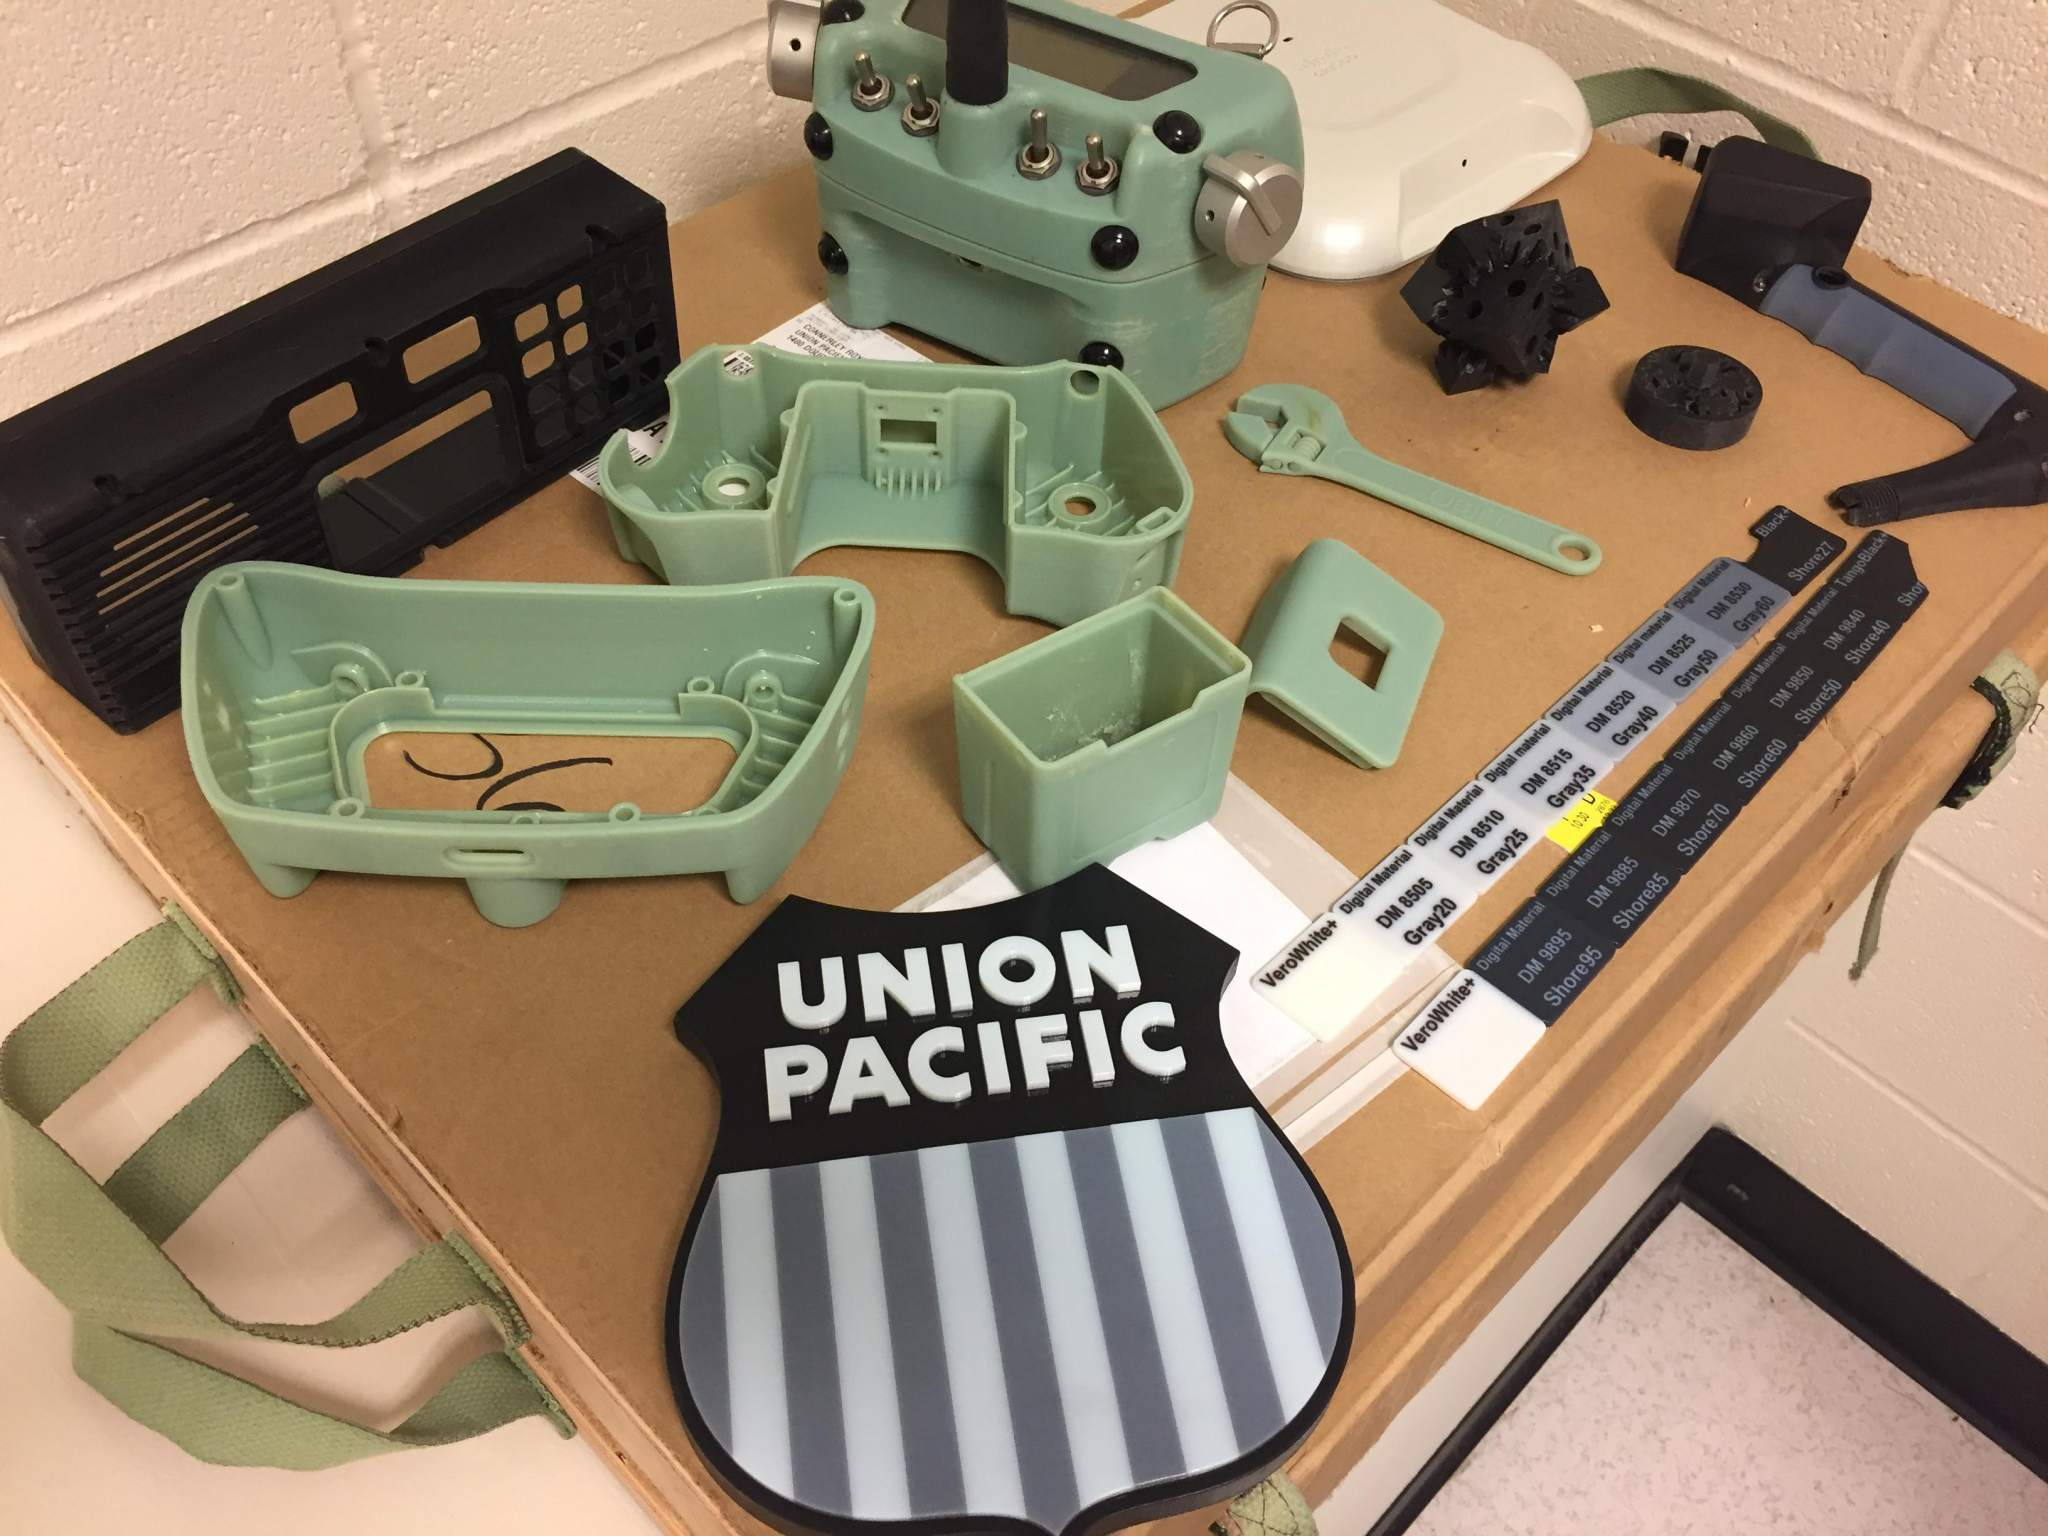 Some of the various items 3D printed by the railroad company. Photo via Union Pacific.